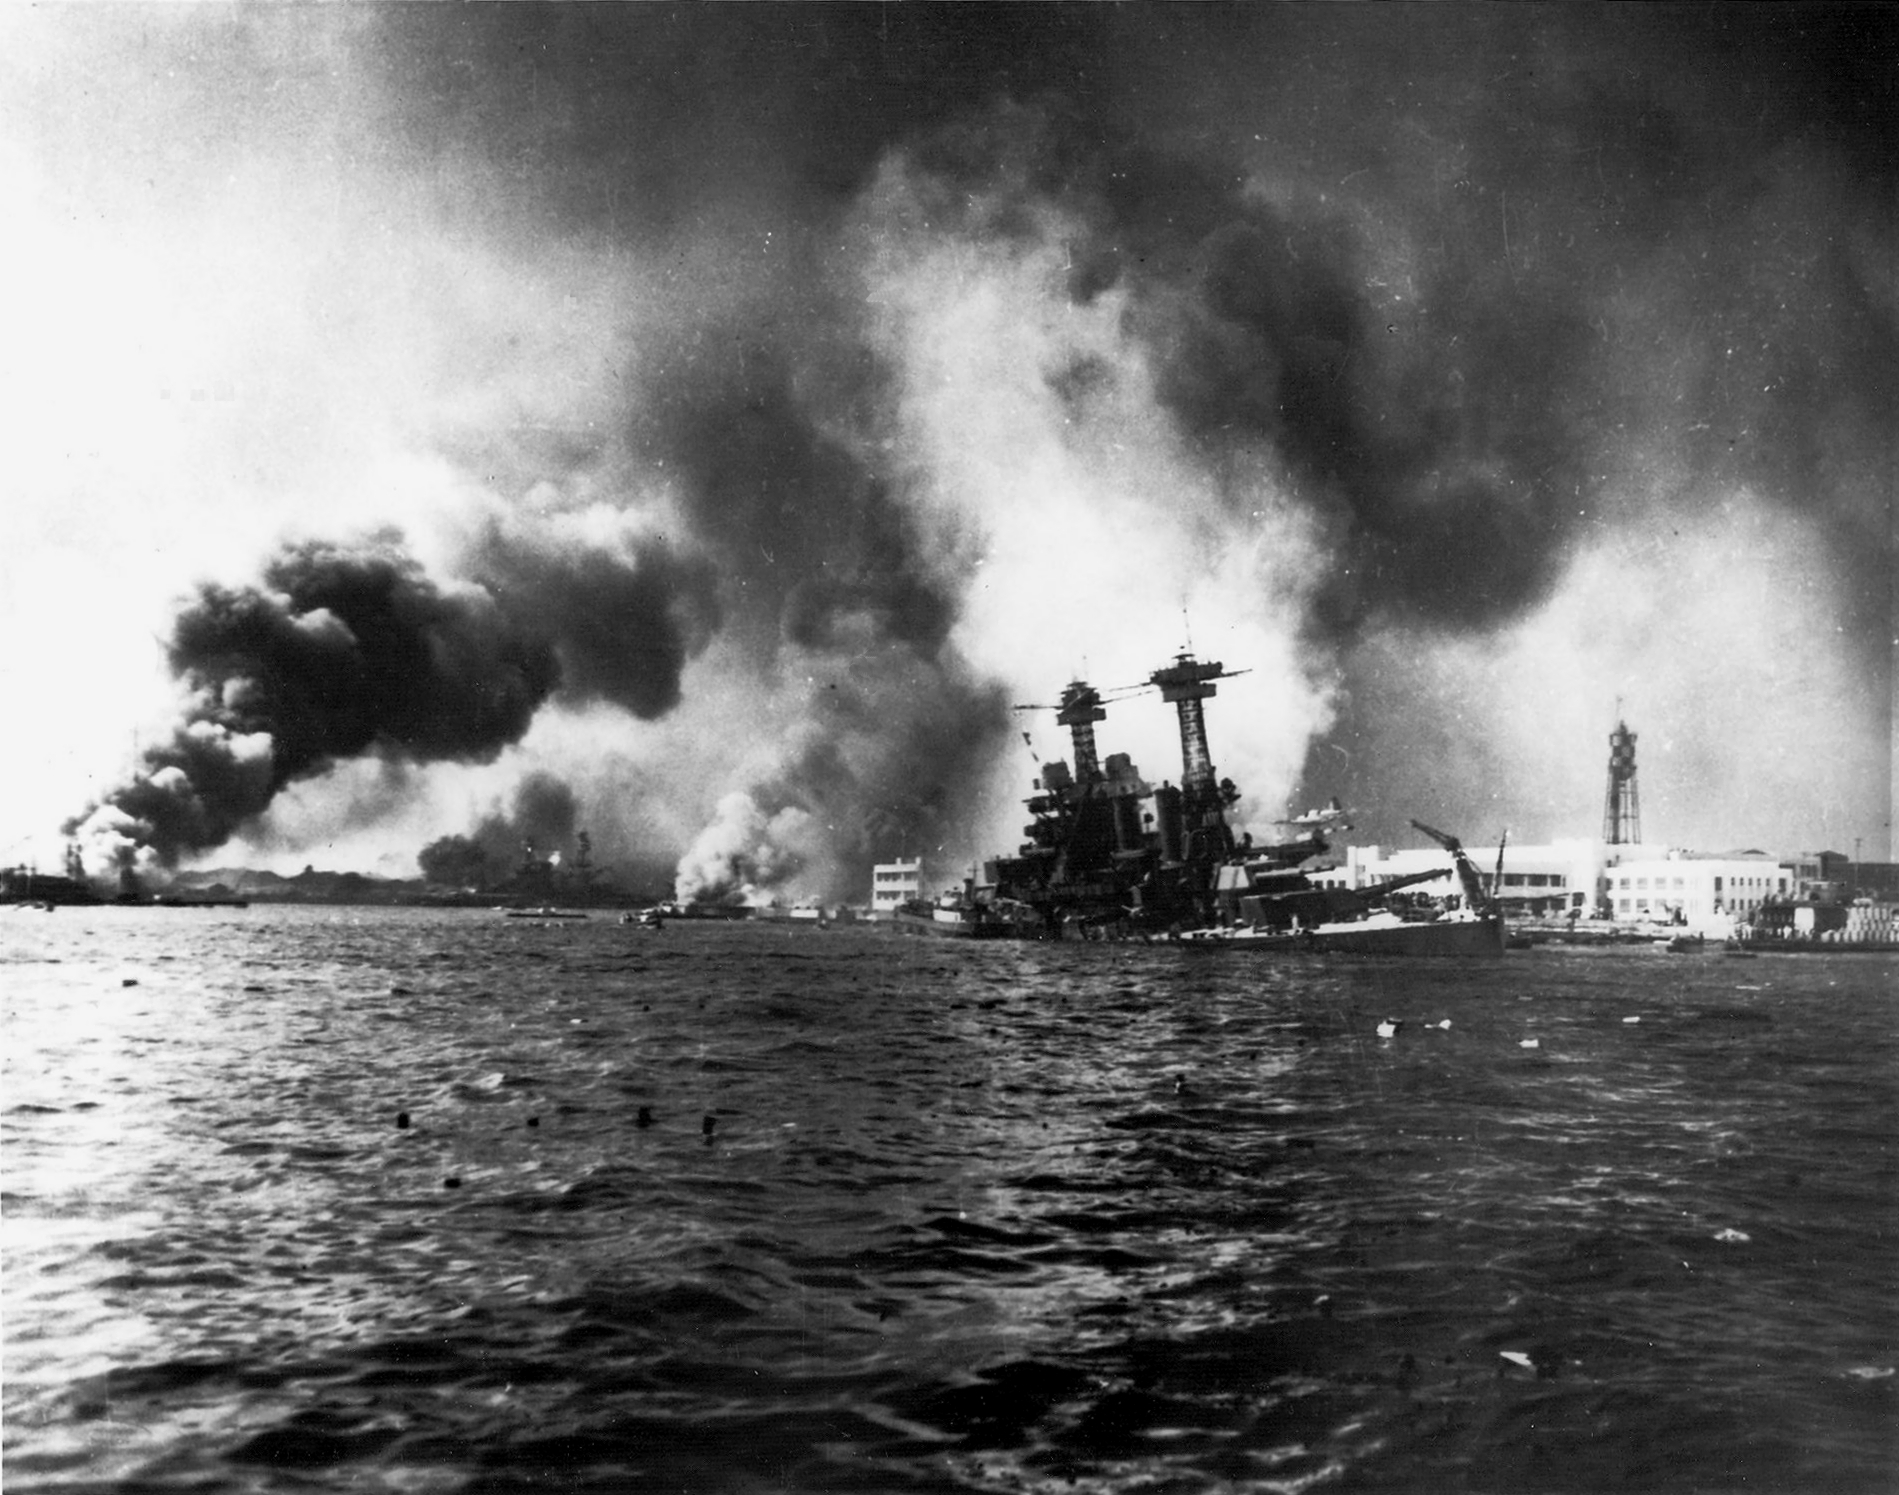 blame bombing pearl harbor On this day, rear admiral husband e kimmel was relieved of his command of the us pacific fleet as part of a shake-up of officers in the wake of the pearl harbor disaster.